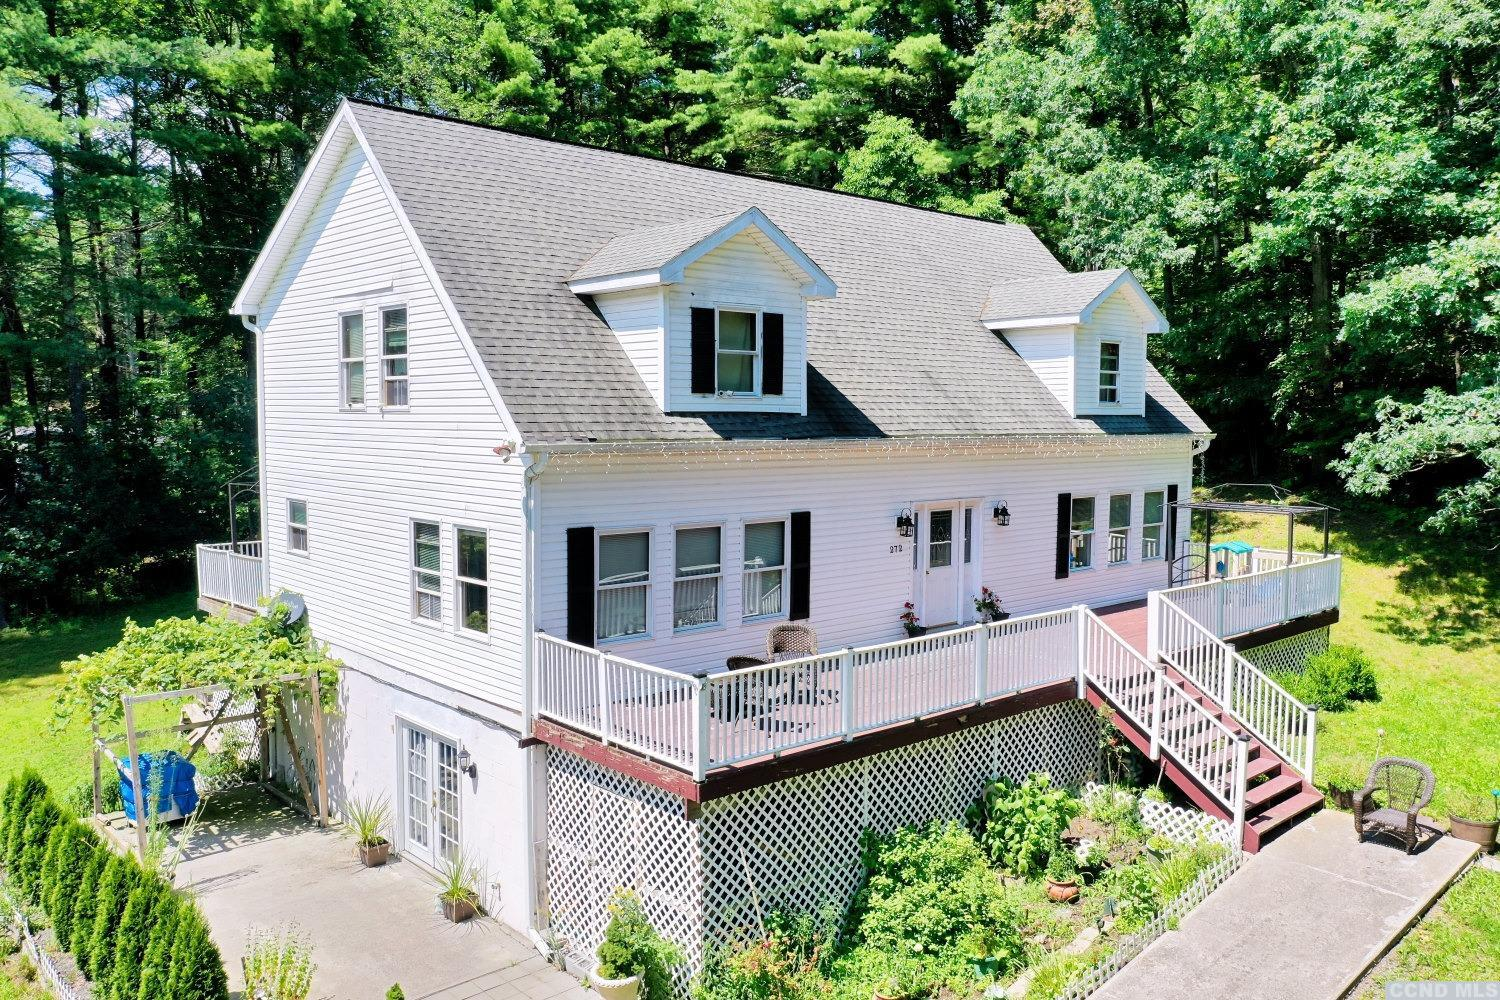 A Beautiful Home & Secluded Setting with 3 Bedrooms & 2 1/2 Baths on 2.3 Acres! The home features a master bedroom & bath ensuite on the 1st floor, a large kitchen with a breakfast bar & center island, a dining area, a living room, 2 bedrooms and an office on the 2nd floor with a large Jack & Jill bathroom, a full walkout basement with high ceilings, a 2 car garage with a room on the 2nd floor. There is a patio, front & rear decks, landscaping, yard space, a shed, and a small stream. The home has an inviting kitchen, a comfortable living room, a laundry room, rooms off of the 2nd floor bedrooms, an unfinished basement for additional living space, an oversized garage, a 2nd floor unfinished walkup in the garage for a studio, additional living space, or a larger office. It's a Delightful Home in a Graceful Setting! Please view our 3D virtual tour of the home & property.